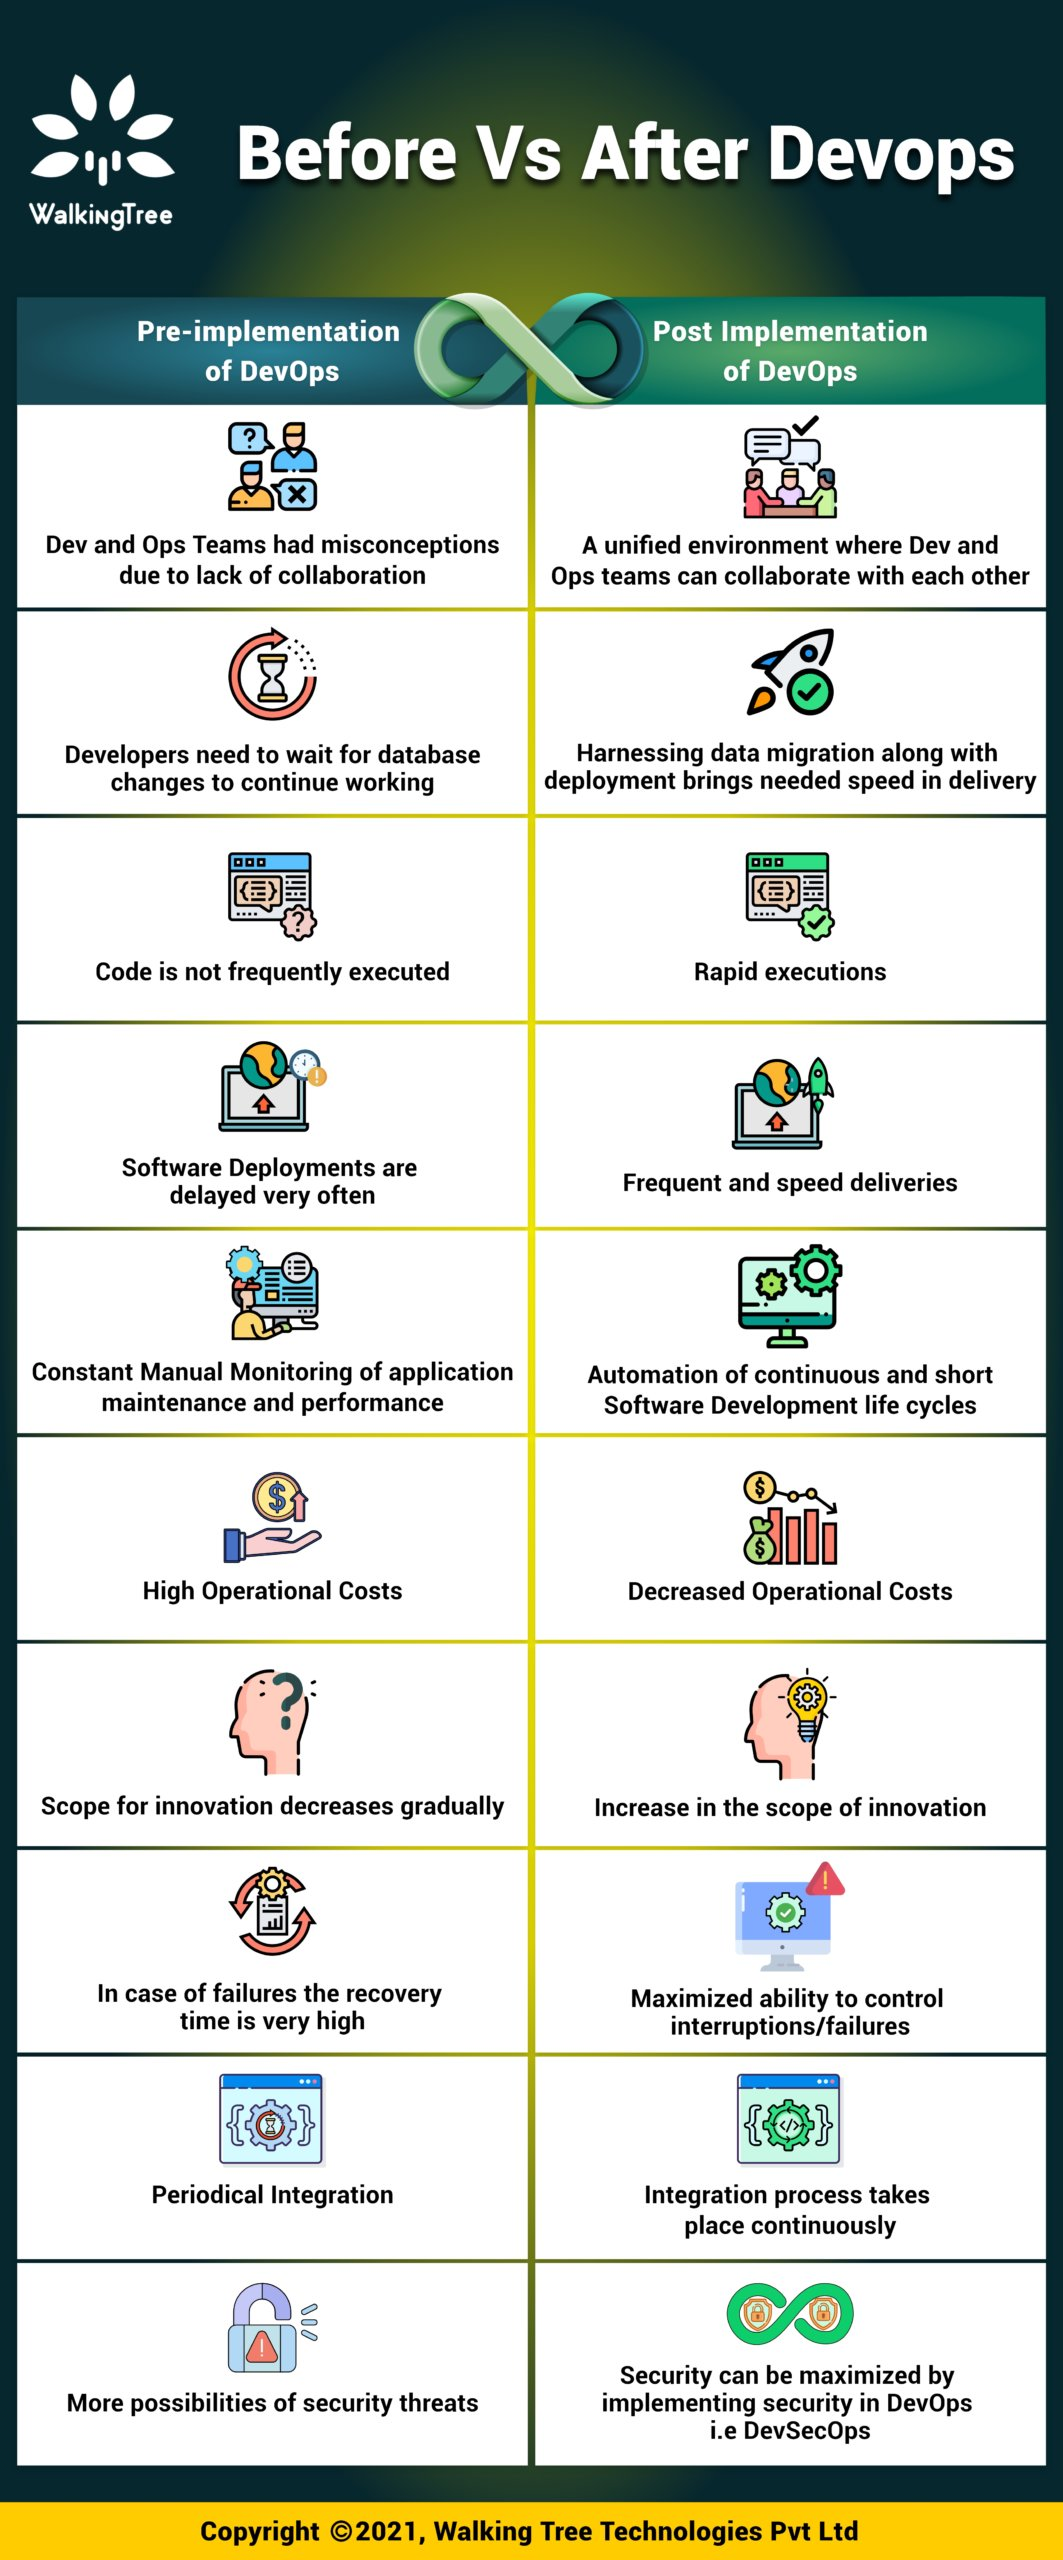 Before Vs After Devops - Infographic